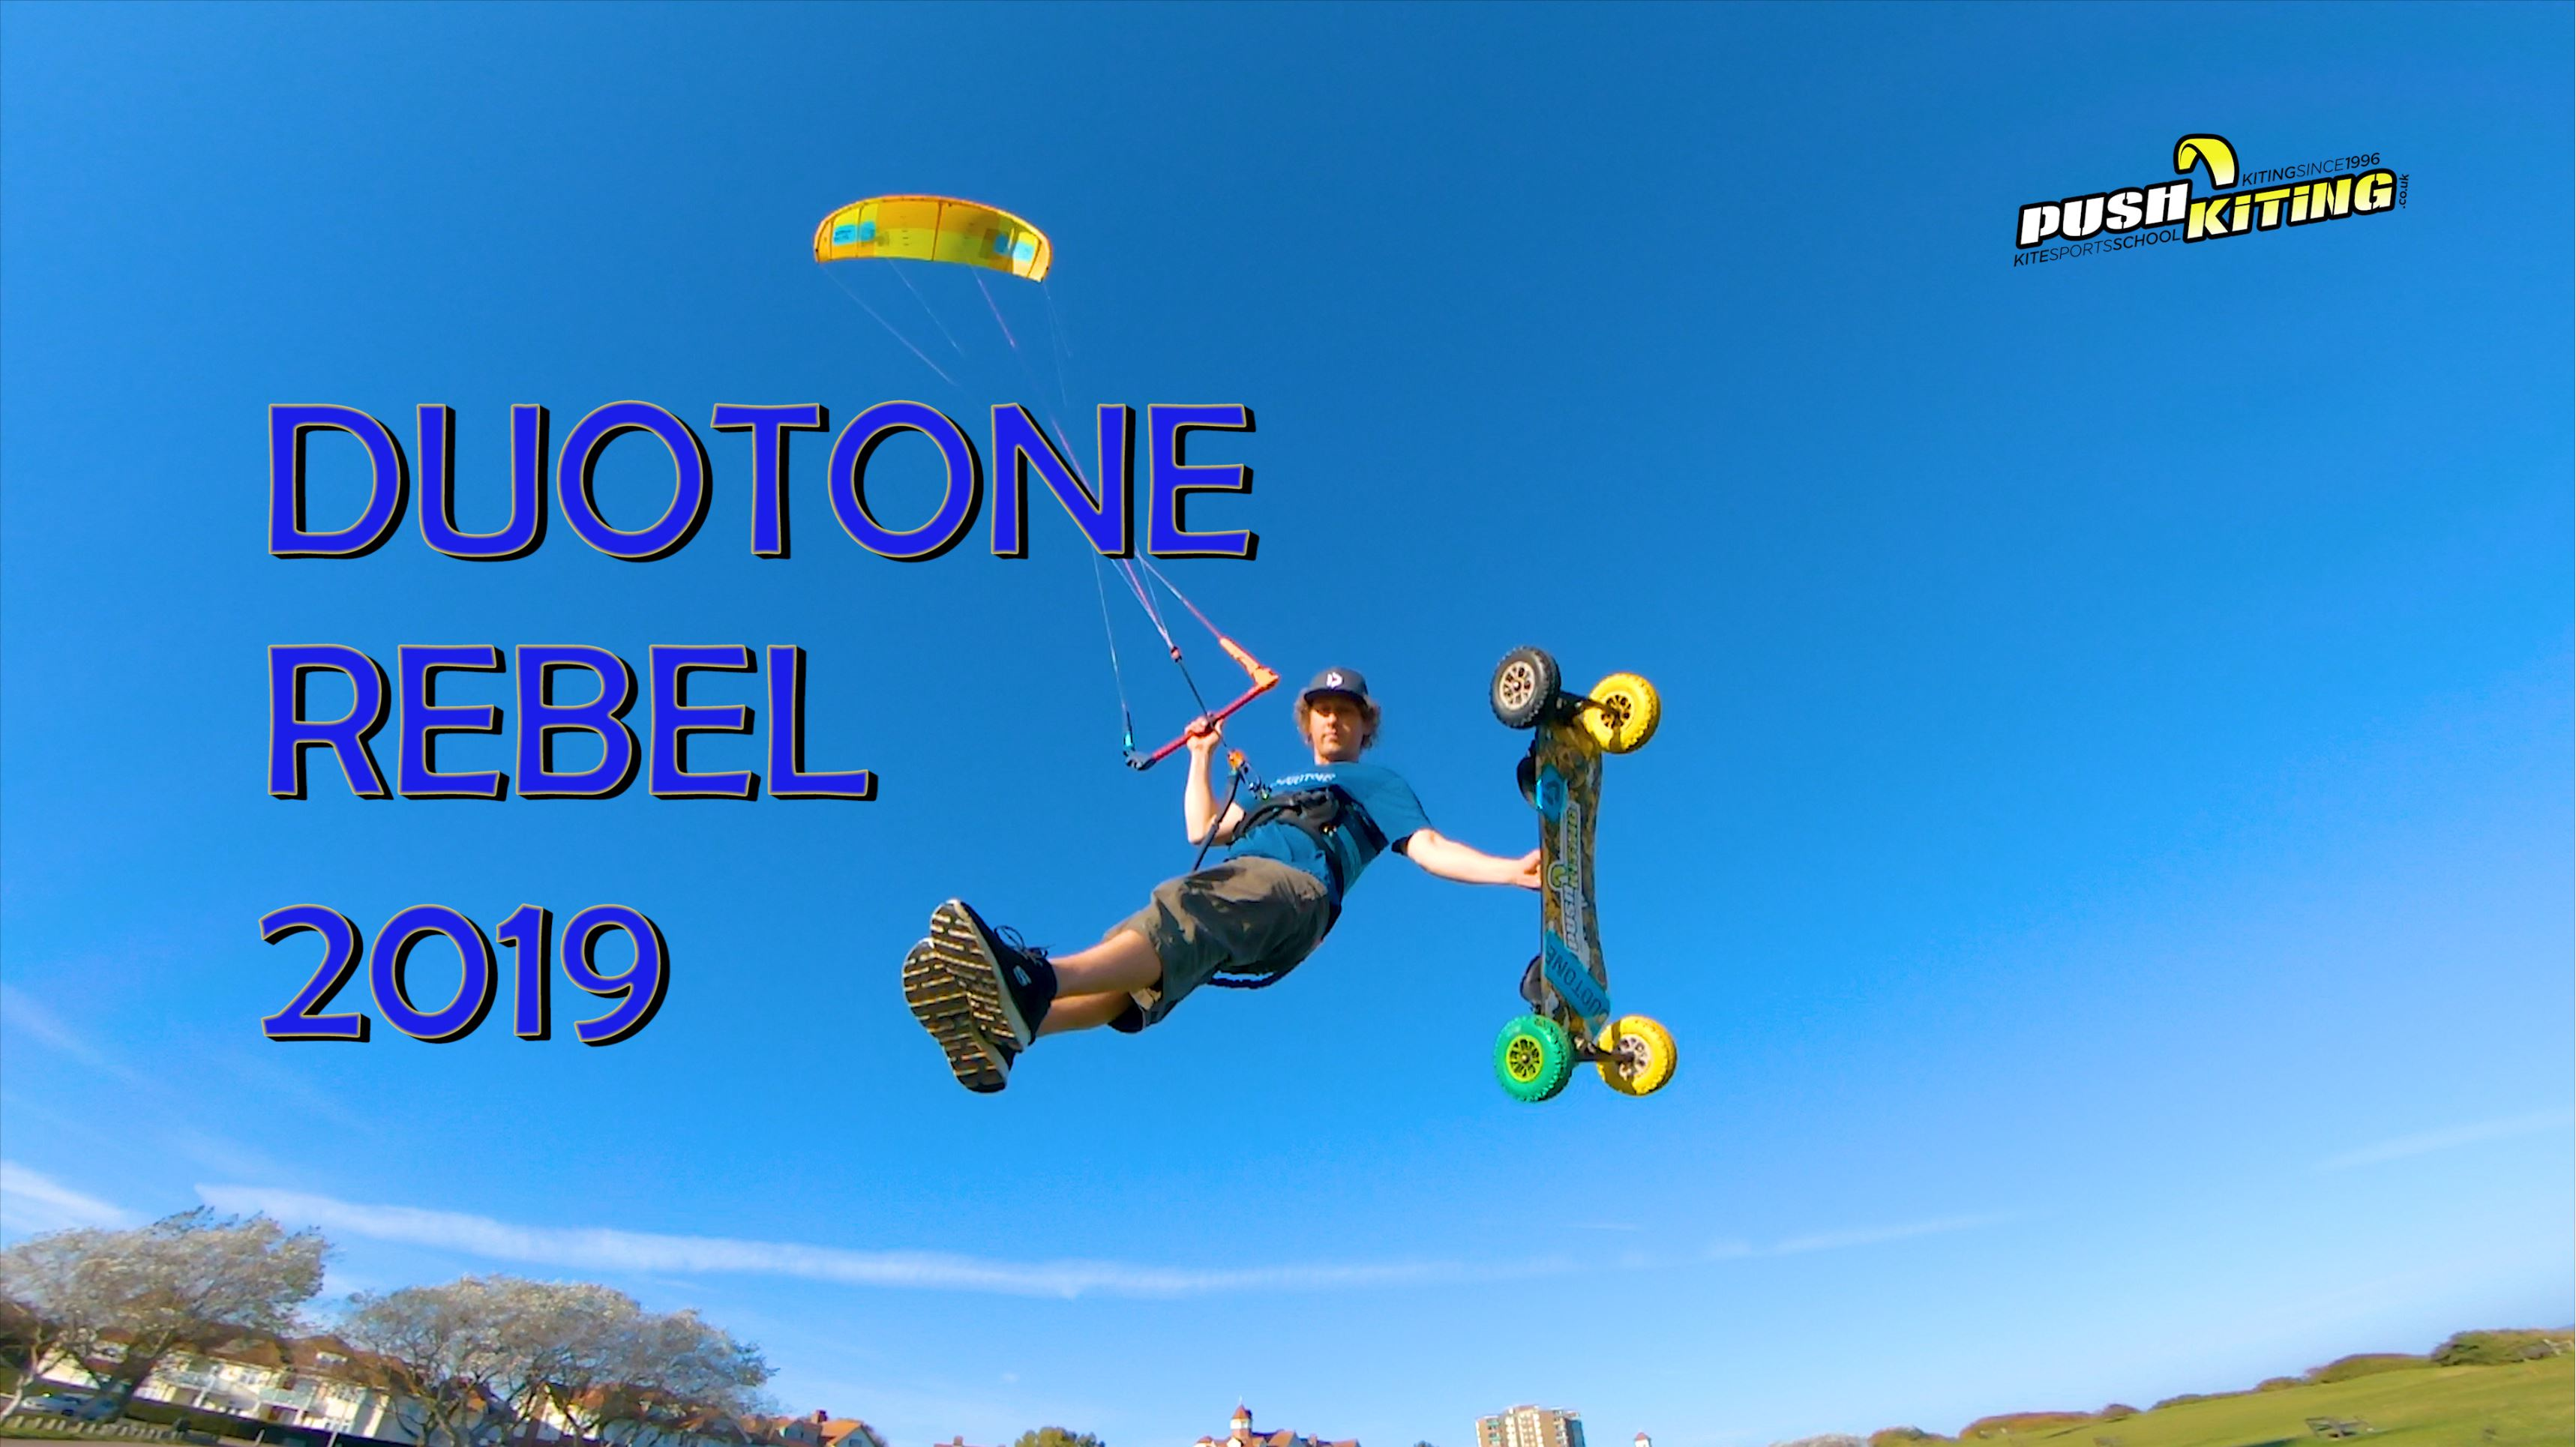 2019 DUOTONE REBEL intro and review video